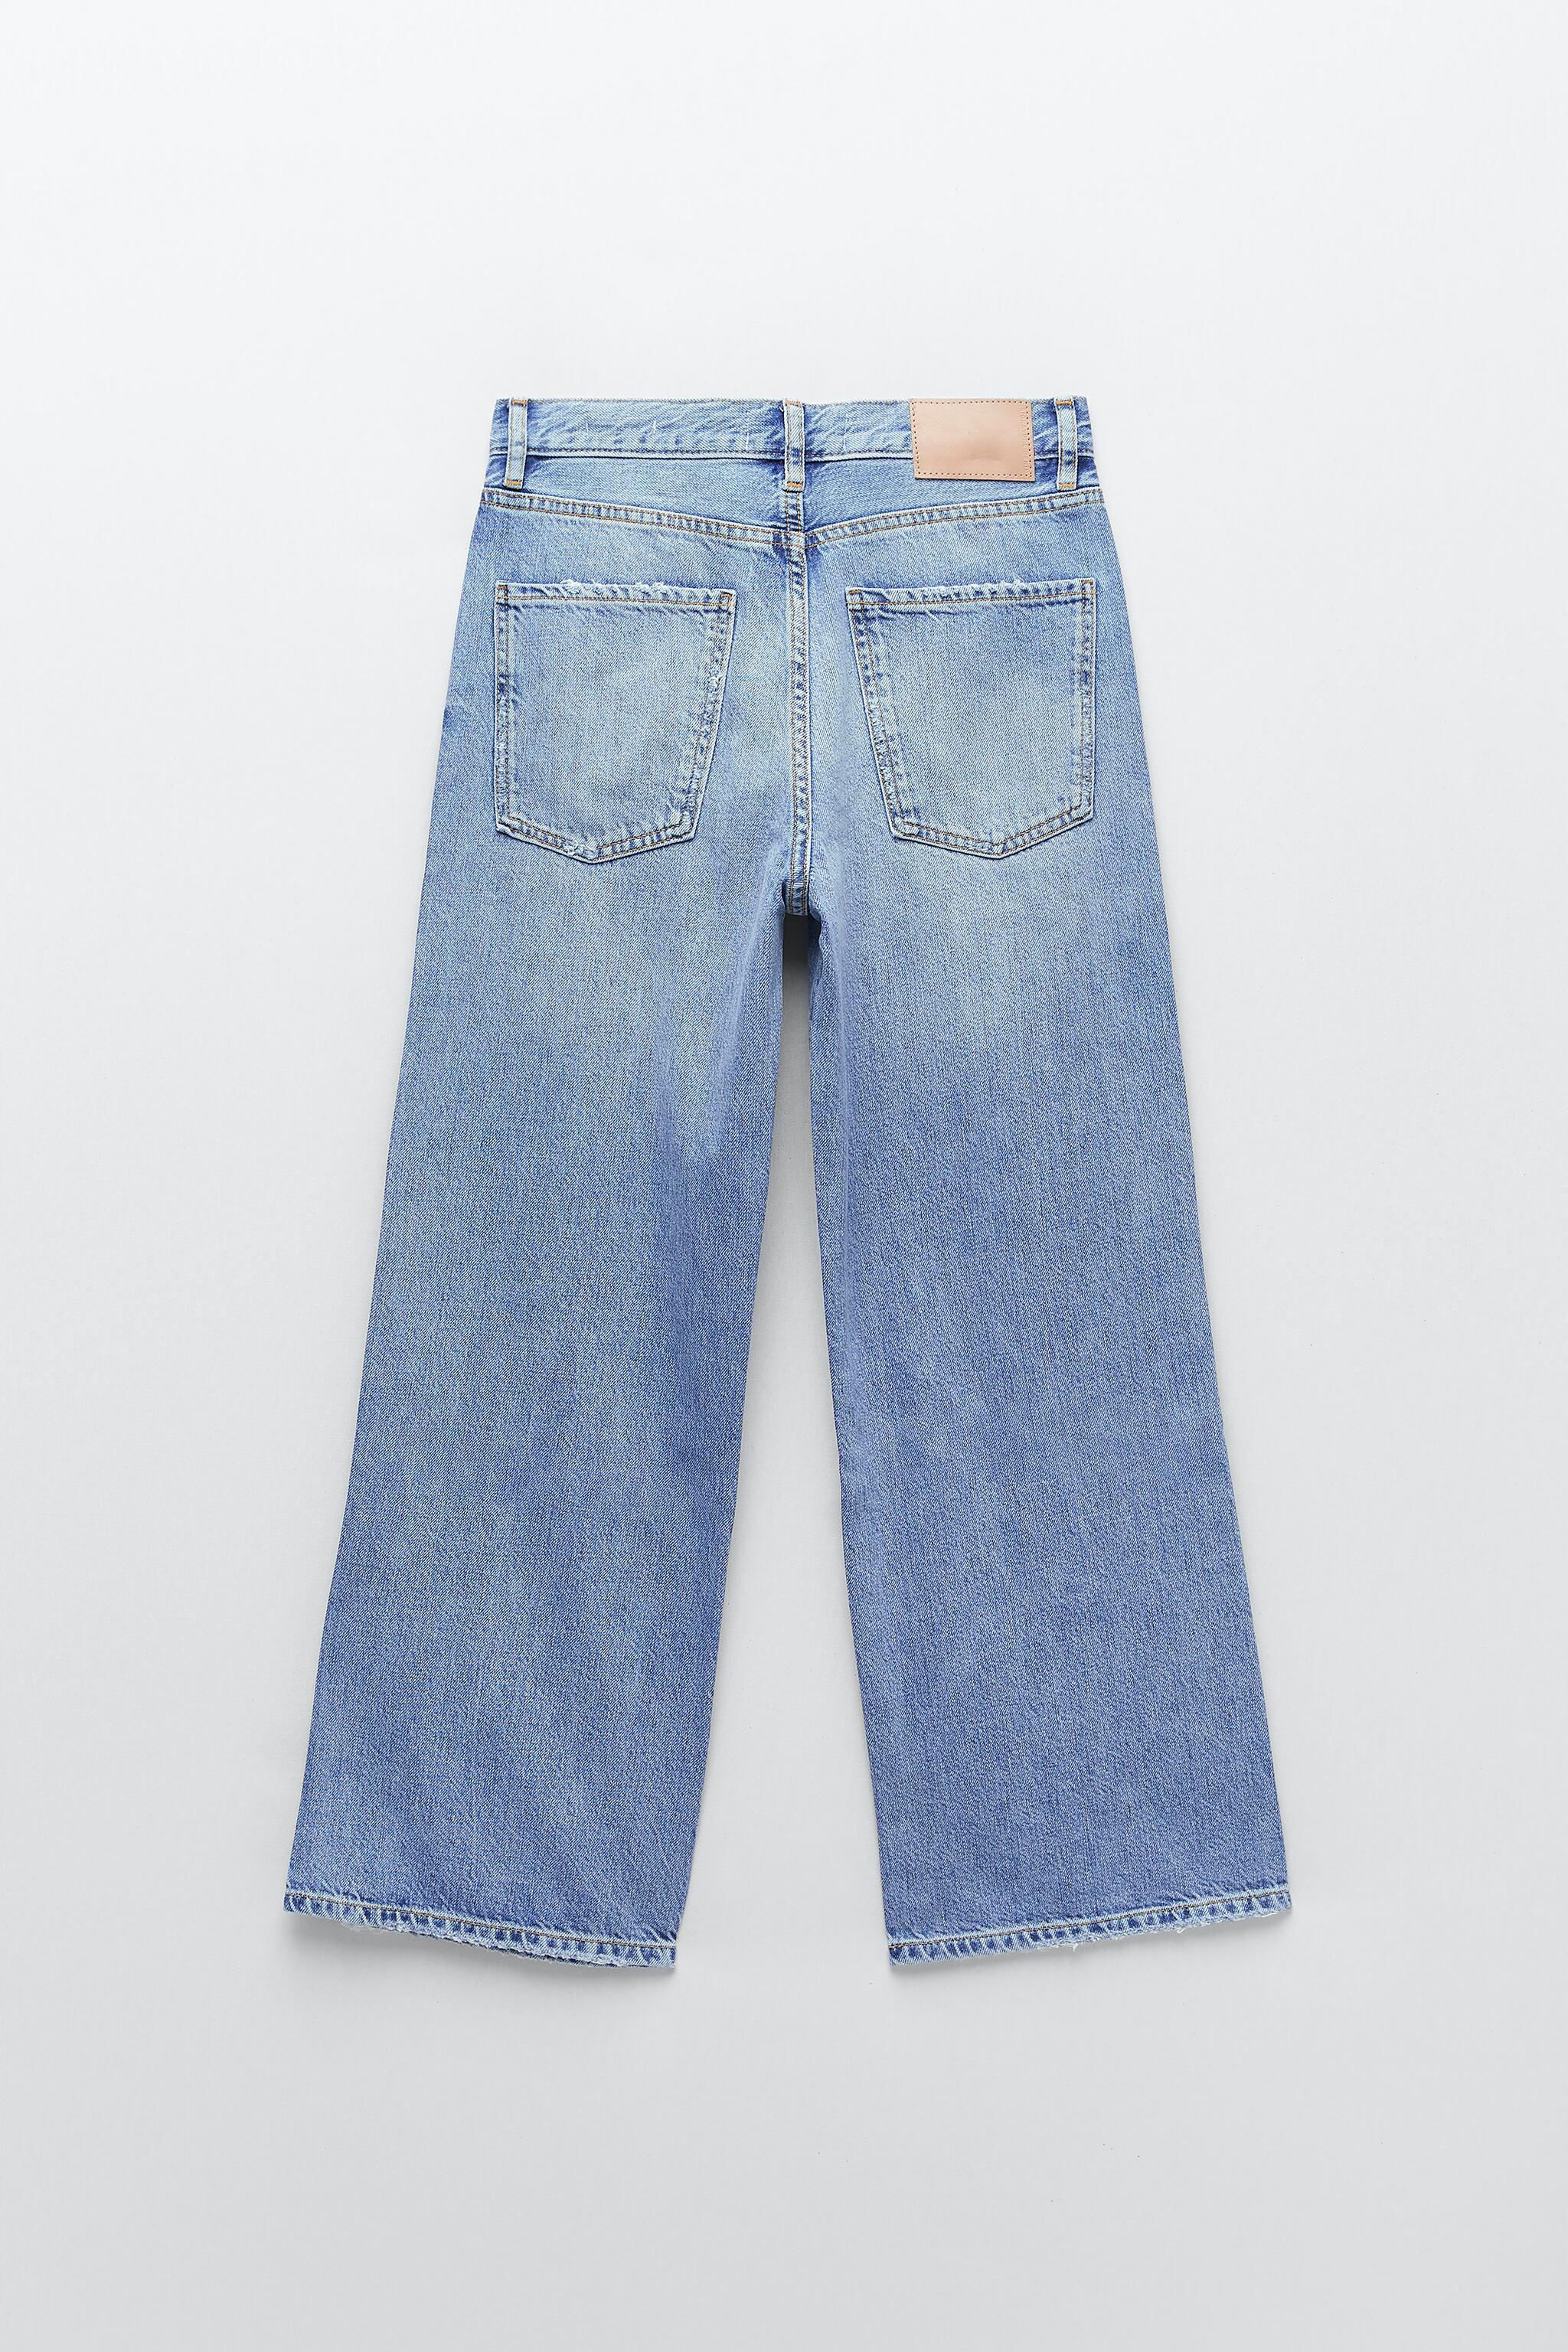 THE PAX CULOTTE ZW JEANS 8